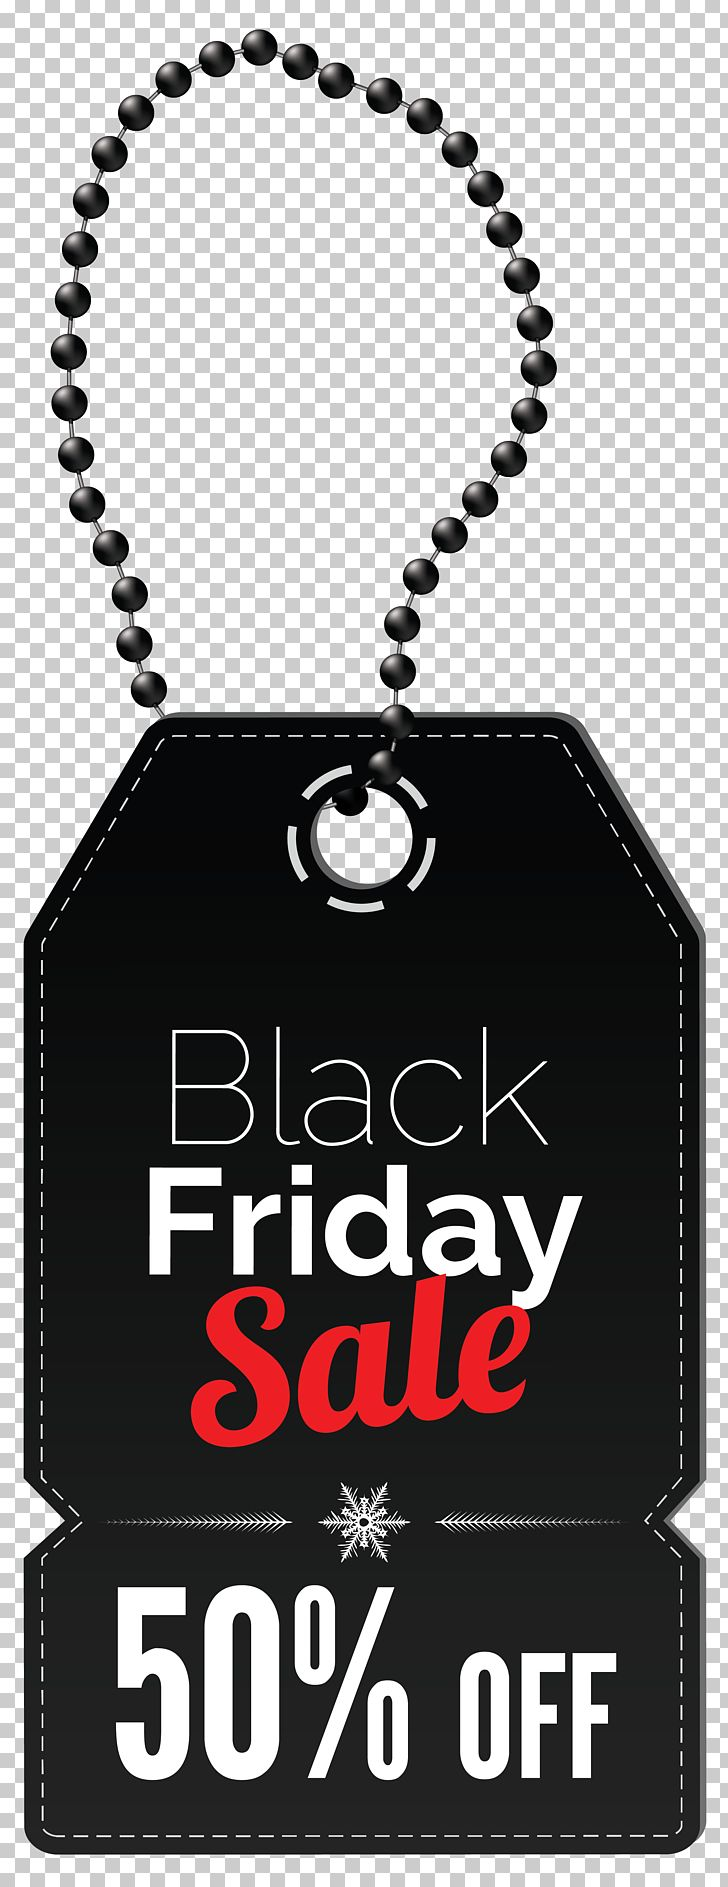 Black Friday Sales PNG, Clipart, Black And White, Black Friday, Brand, Christmas, Clipart Free PNG Download